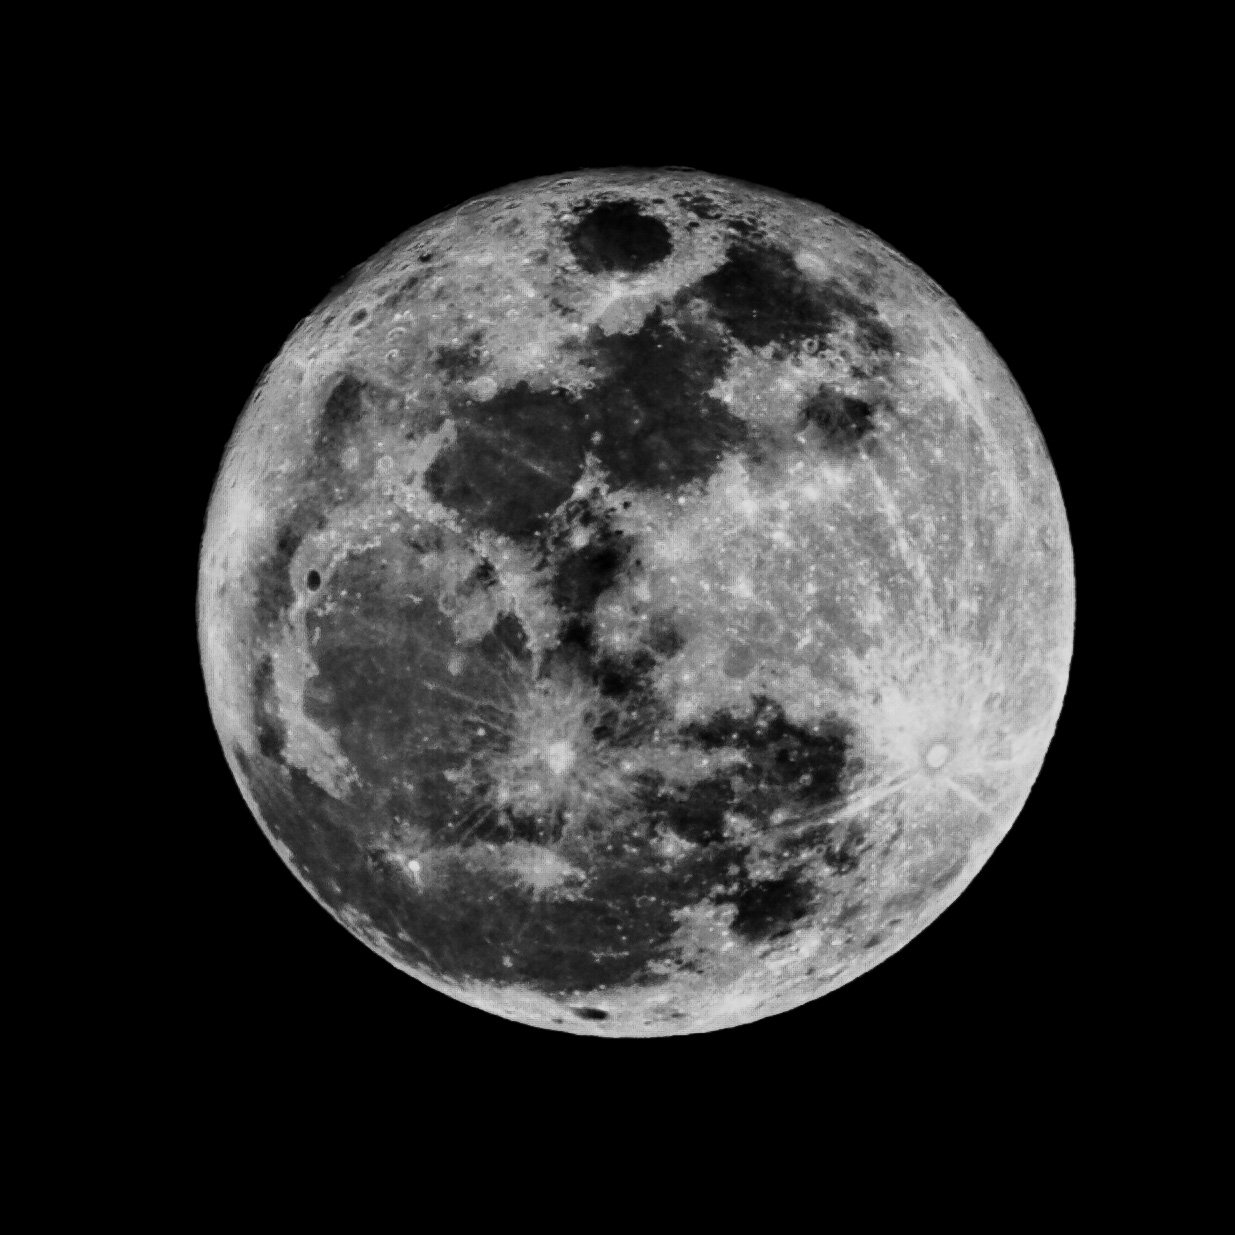 Black and white moon pictures 13